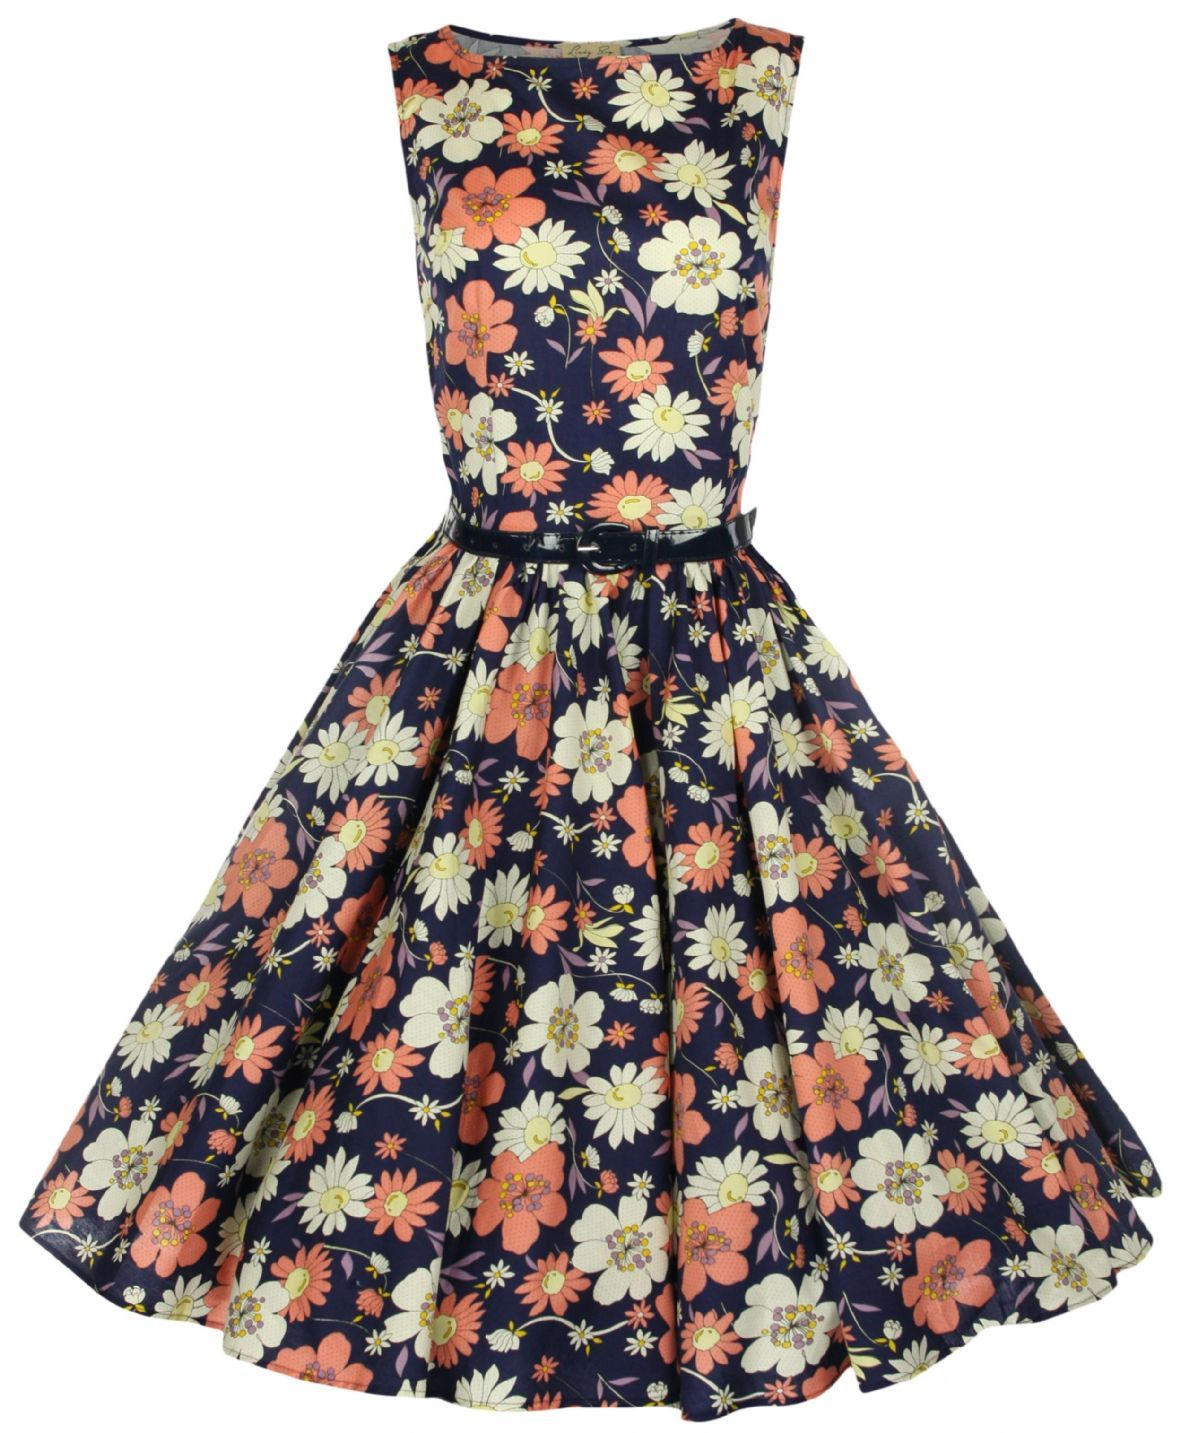 "CLASSY+VINTAGE+1950's+/+AUDREY+HEPBURN+STYLE+FLOWER+PRINT+SWING+DRESS.    •WIDE+FLARED+OUT+FULL+CIRCLE+SKIRT+SECTION.+  •CLASSIC+AND+ICONIC+STYLE+THAT+WILL+NEVER+BE+OUT+OF+FASHION.+  •LIGHTWEIGHT+STRETCH+COTTON+FABRIC.+  •A+26""+PETTICOAT+WILL+BE+REQUIRED+TO+GET+THE+LOOK+IN+THE+PICTURE.+    SIZE+8..."